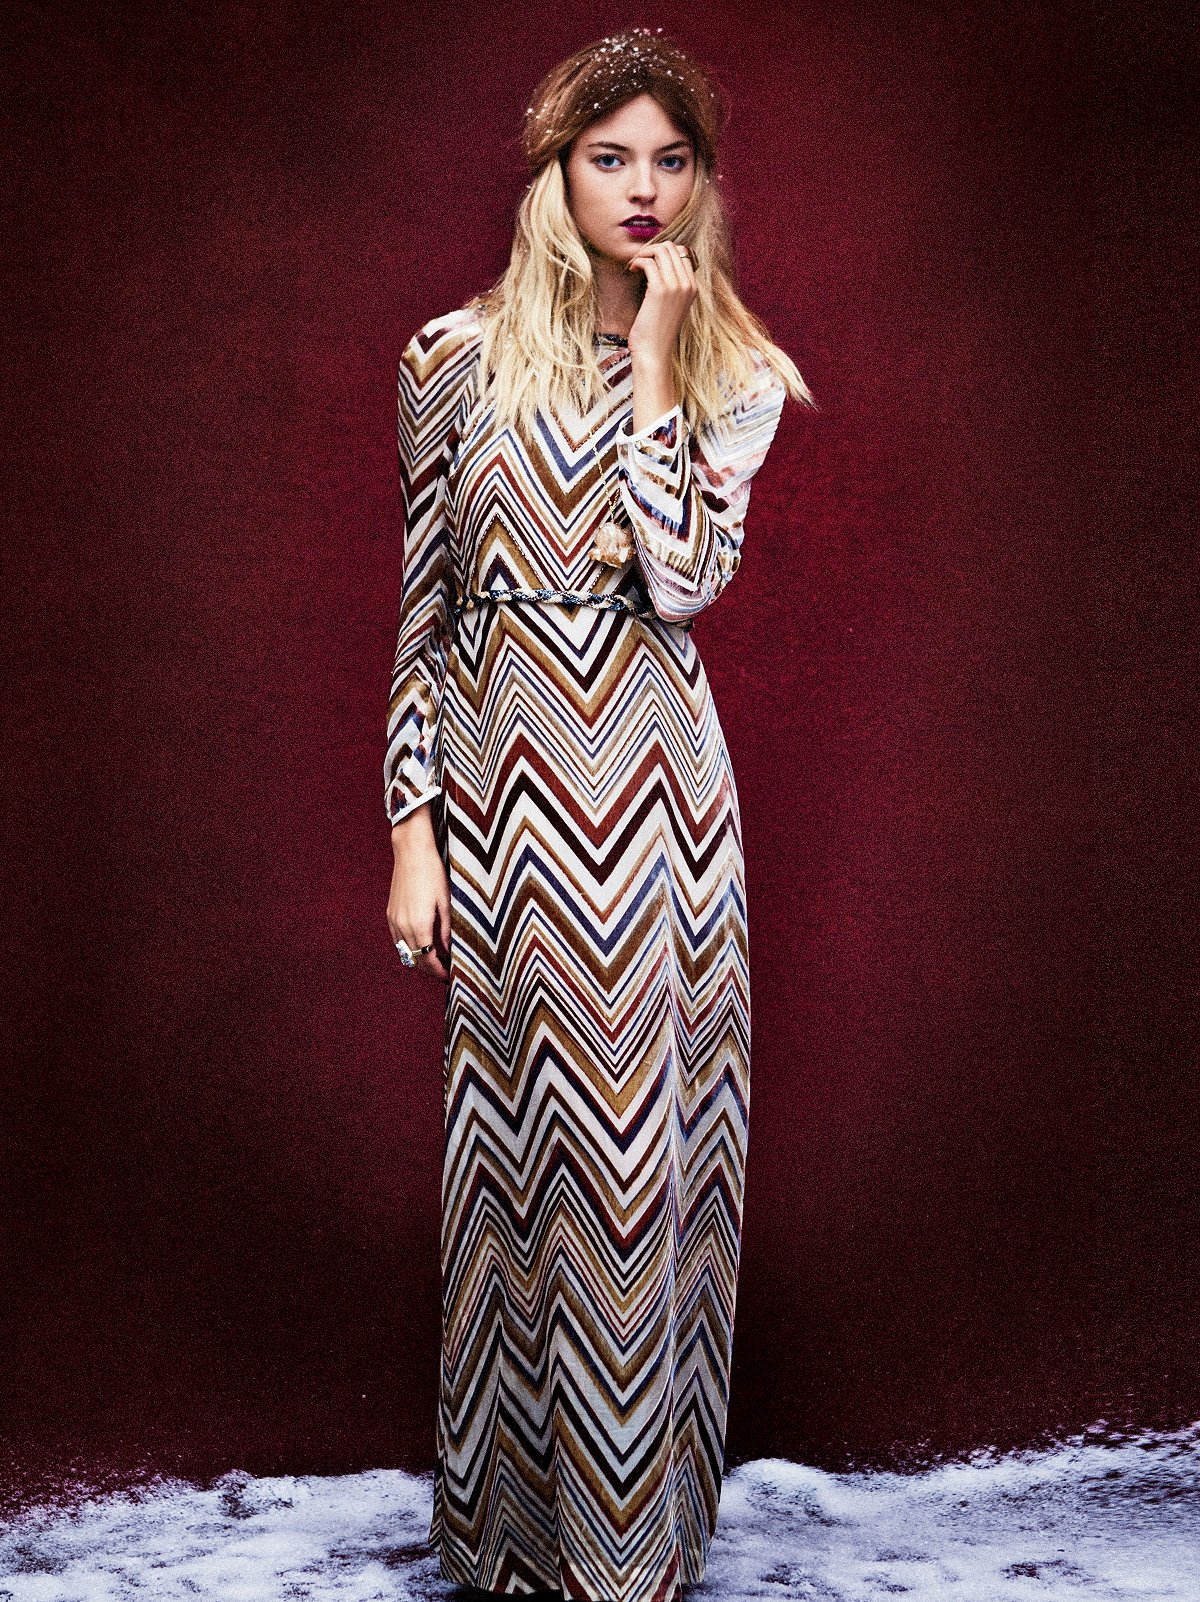 Mirror Reflection Maxi